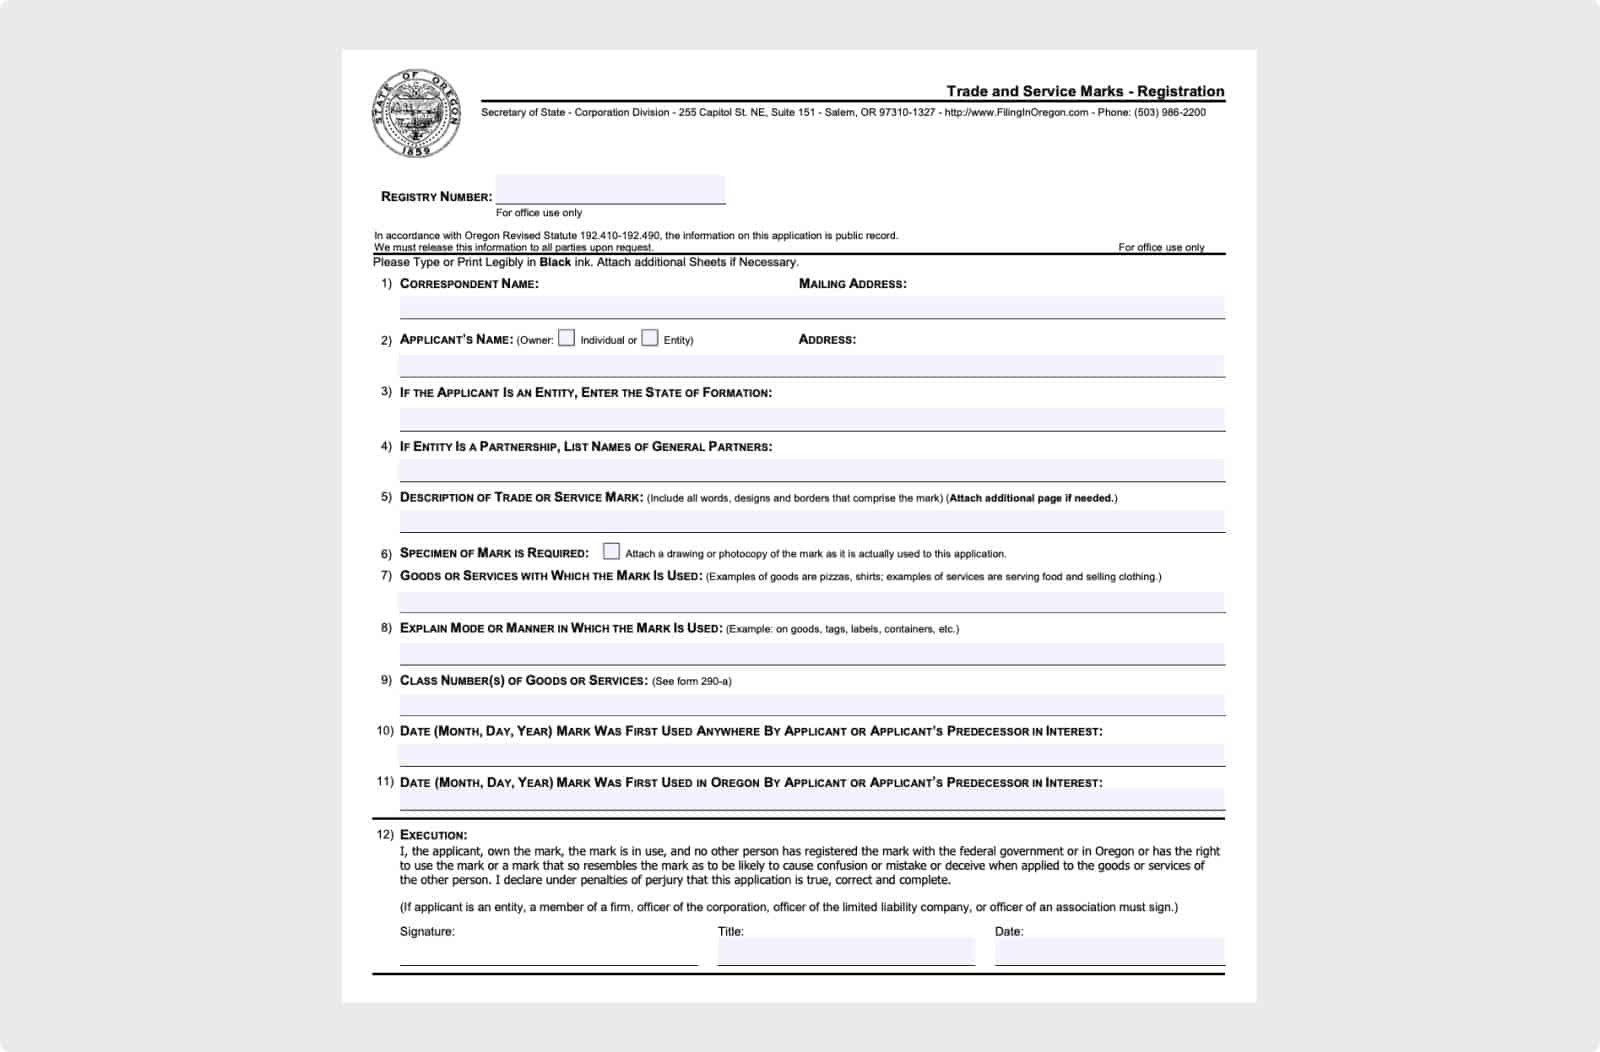 Registration form for trade and service marks